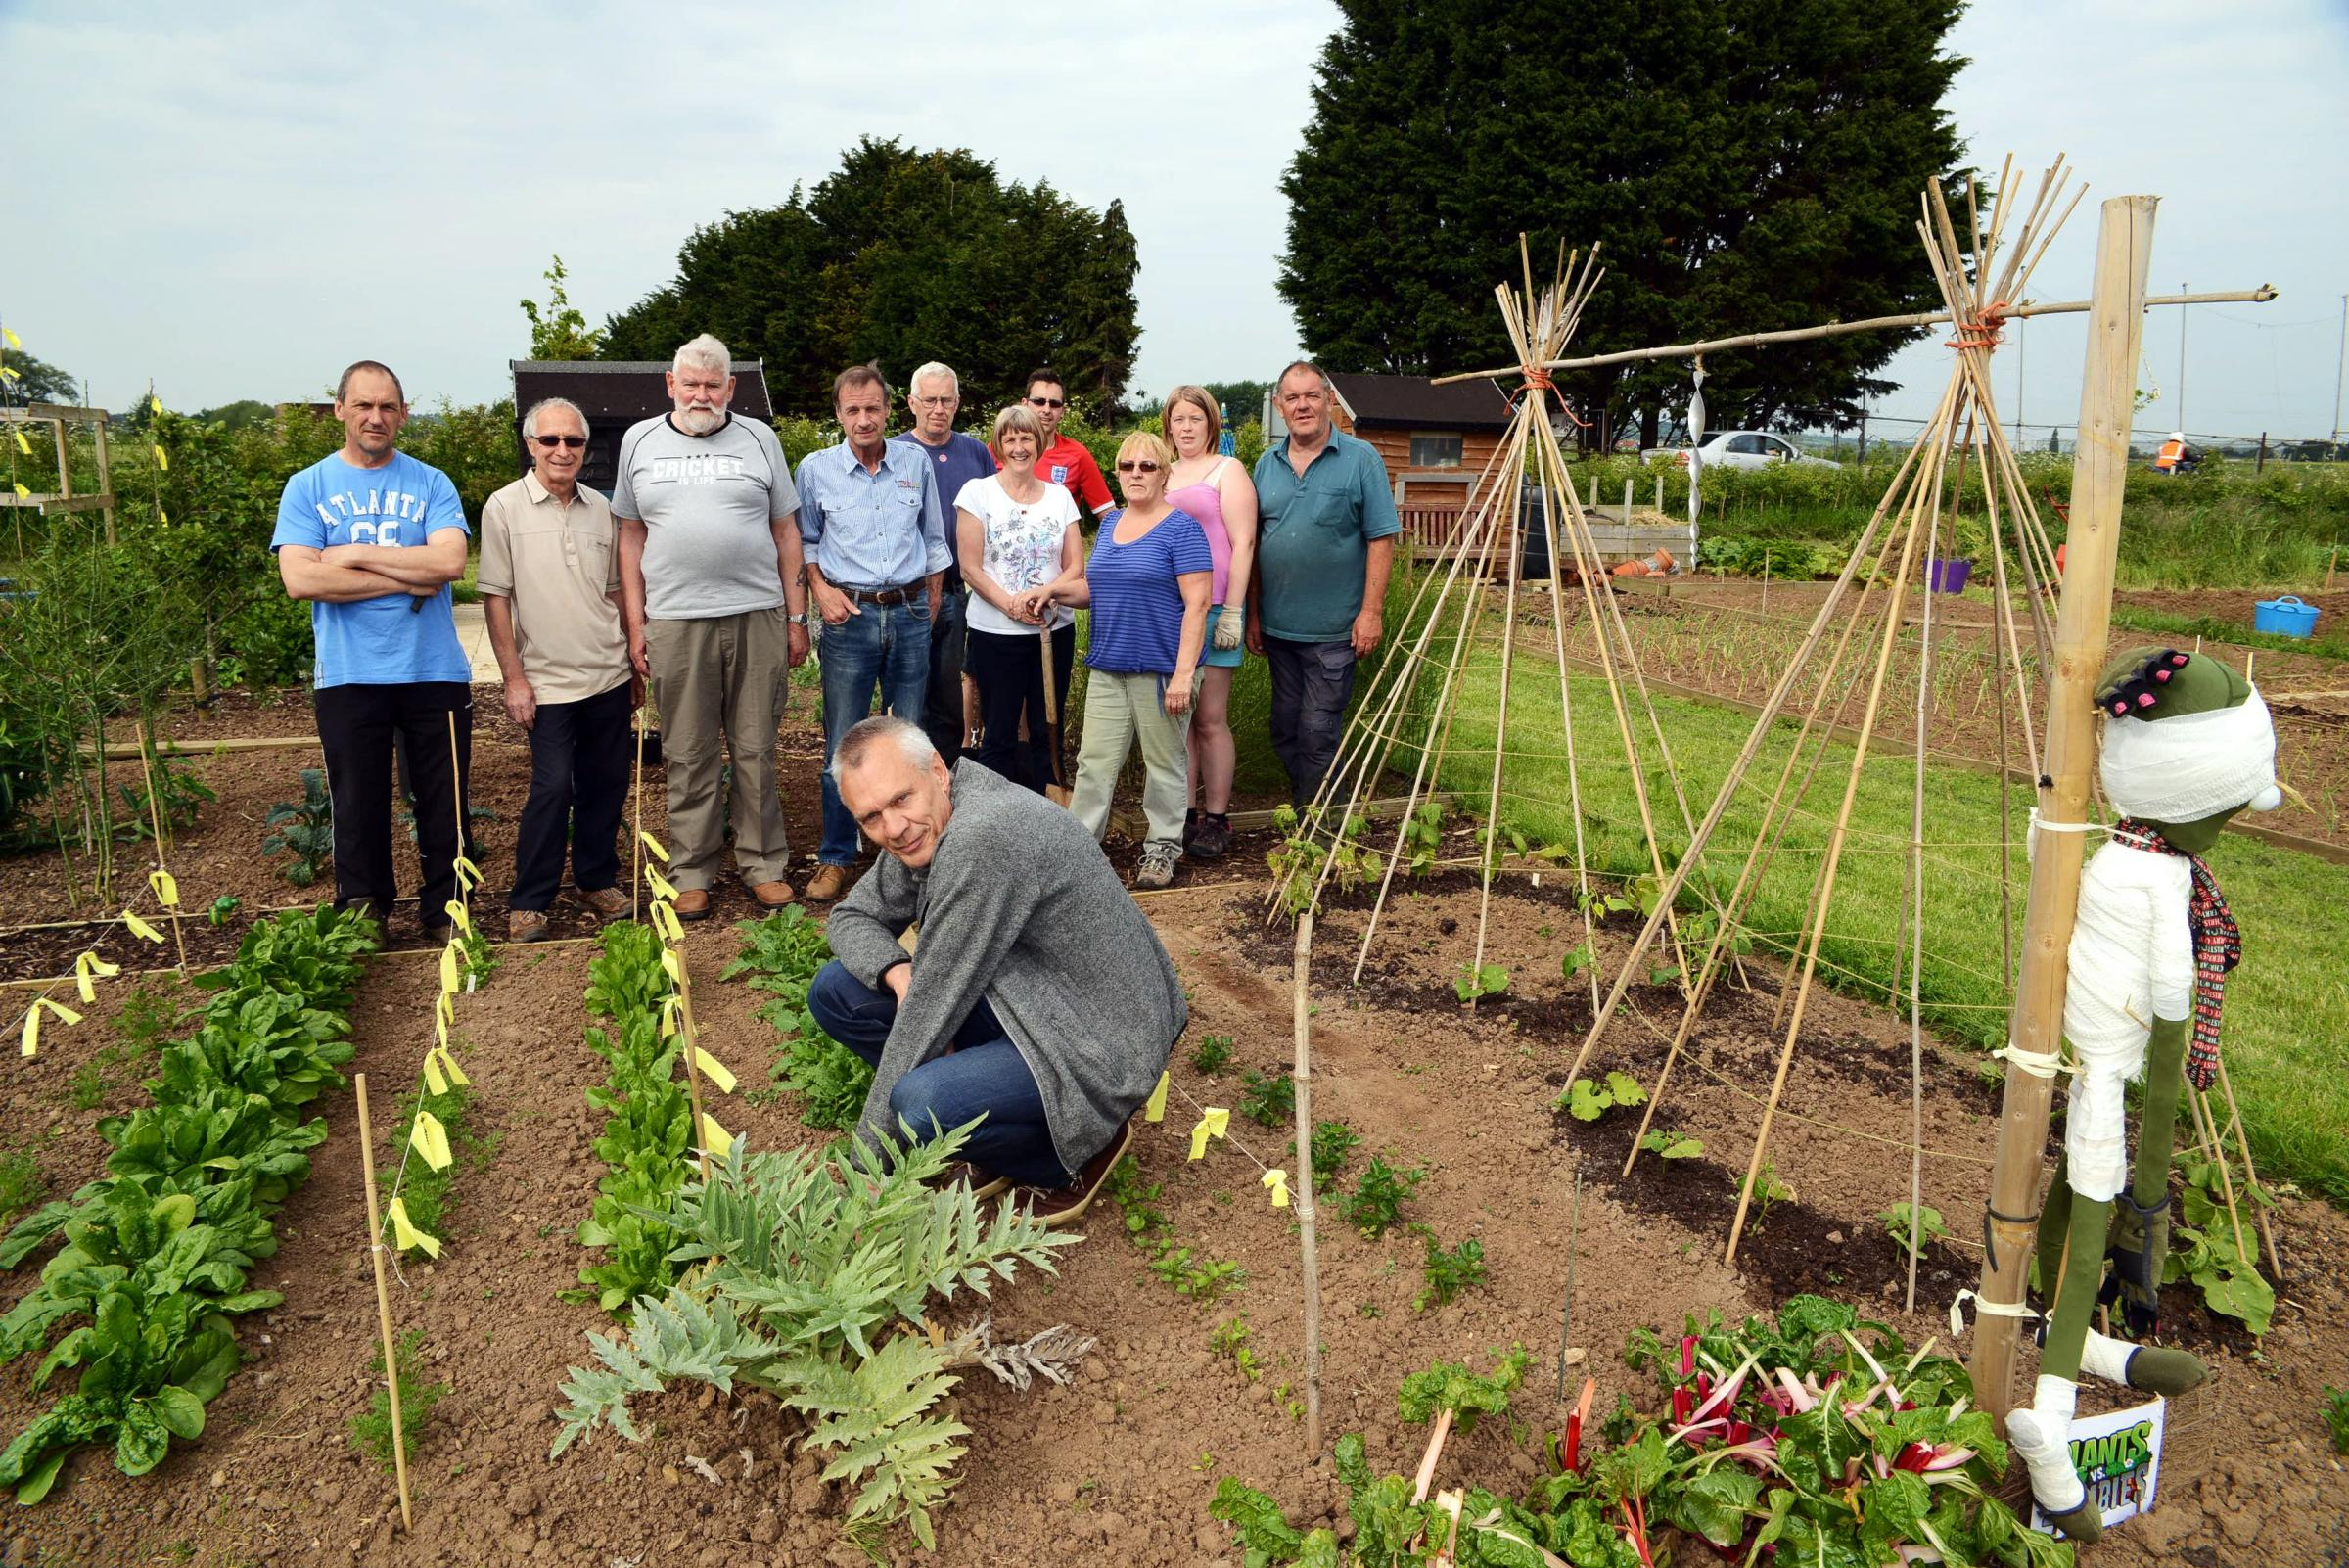 Proud members of the Westonzoyland Allotment Gardeners